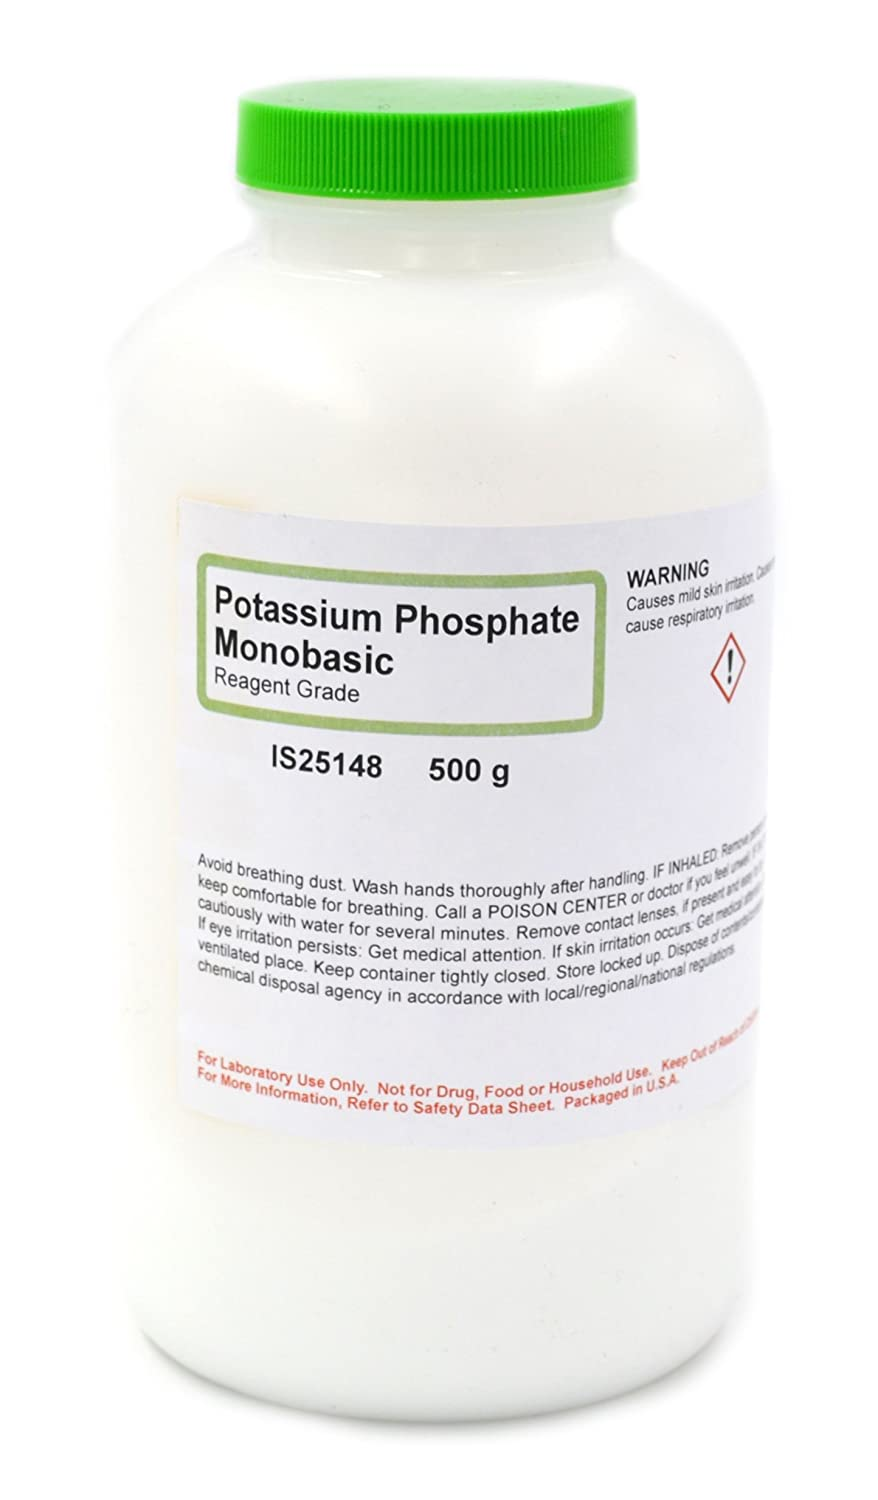 Reagent Grade Potassium Phosphate Monobasic, 500g - The Curated Chemical Collection